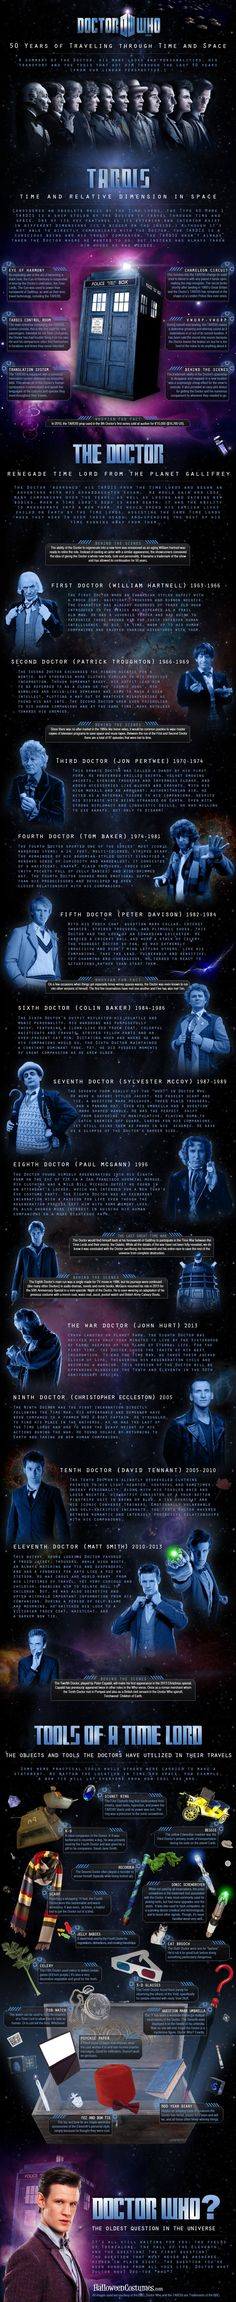 Incredibly Thorough DOCTOR WHO Infographic from The Nerdist